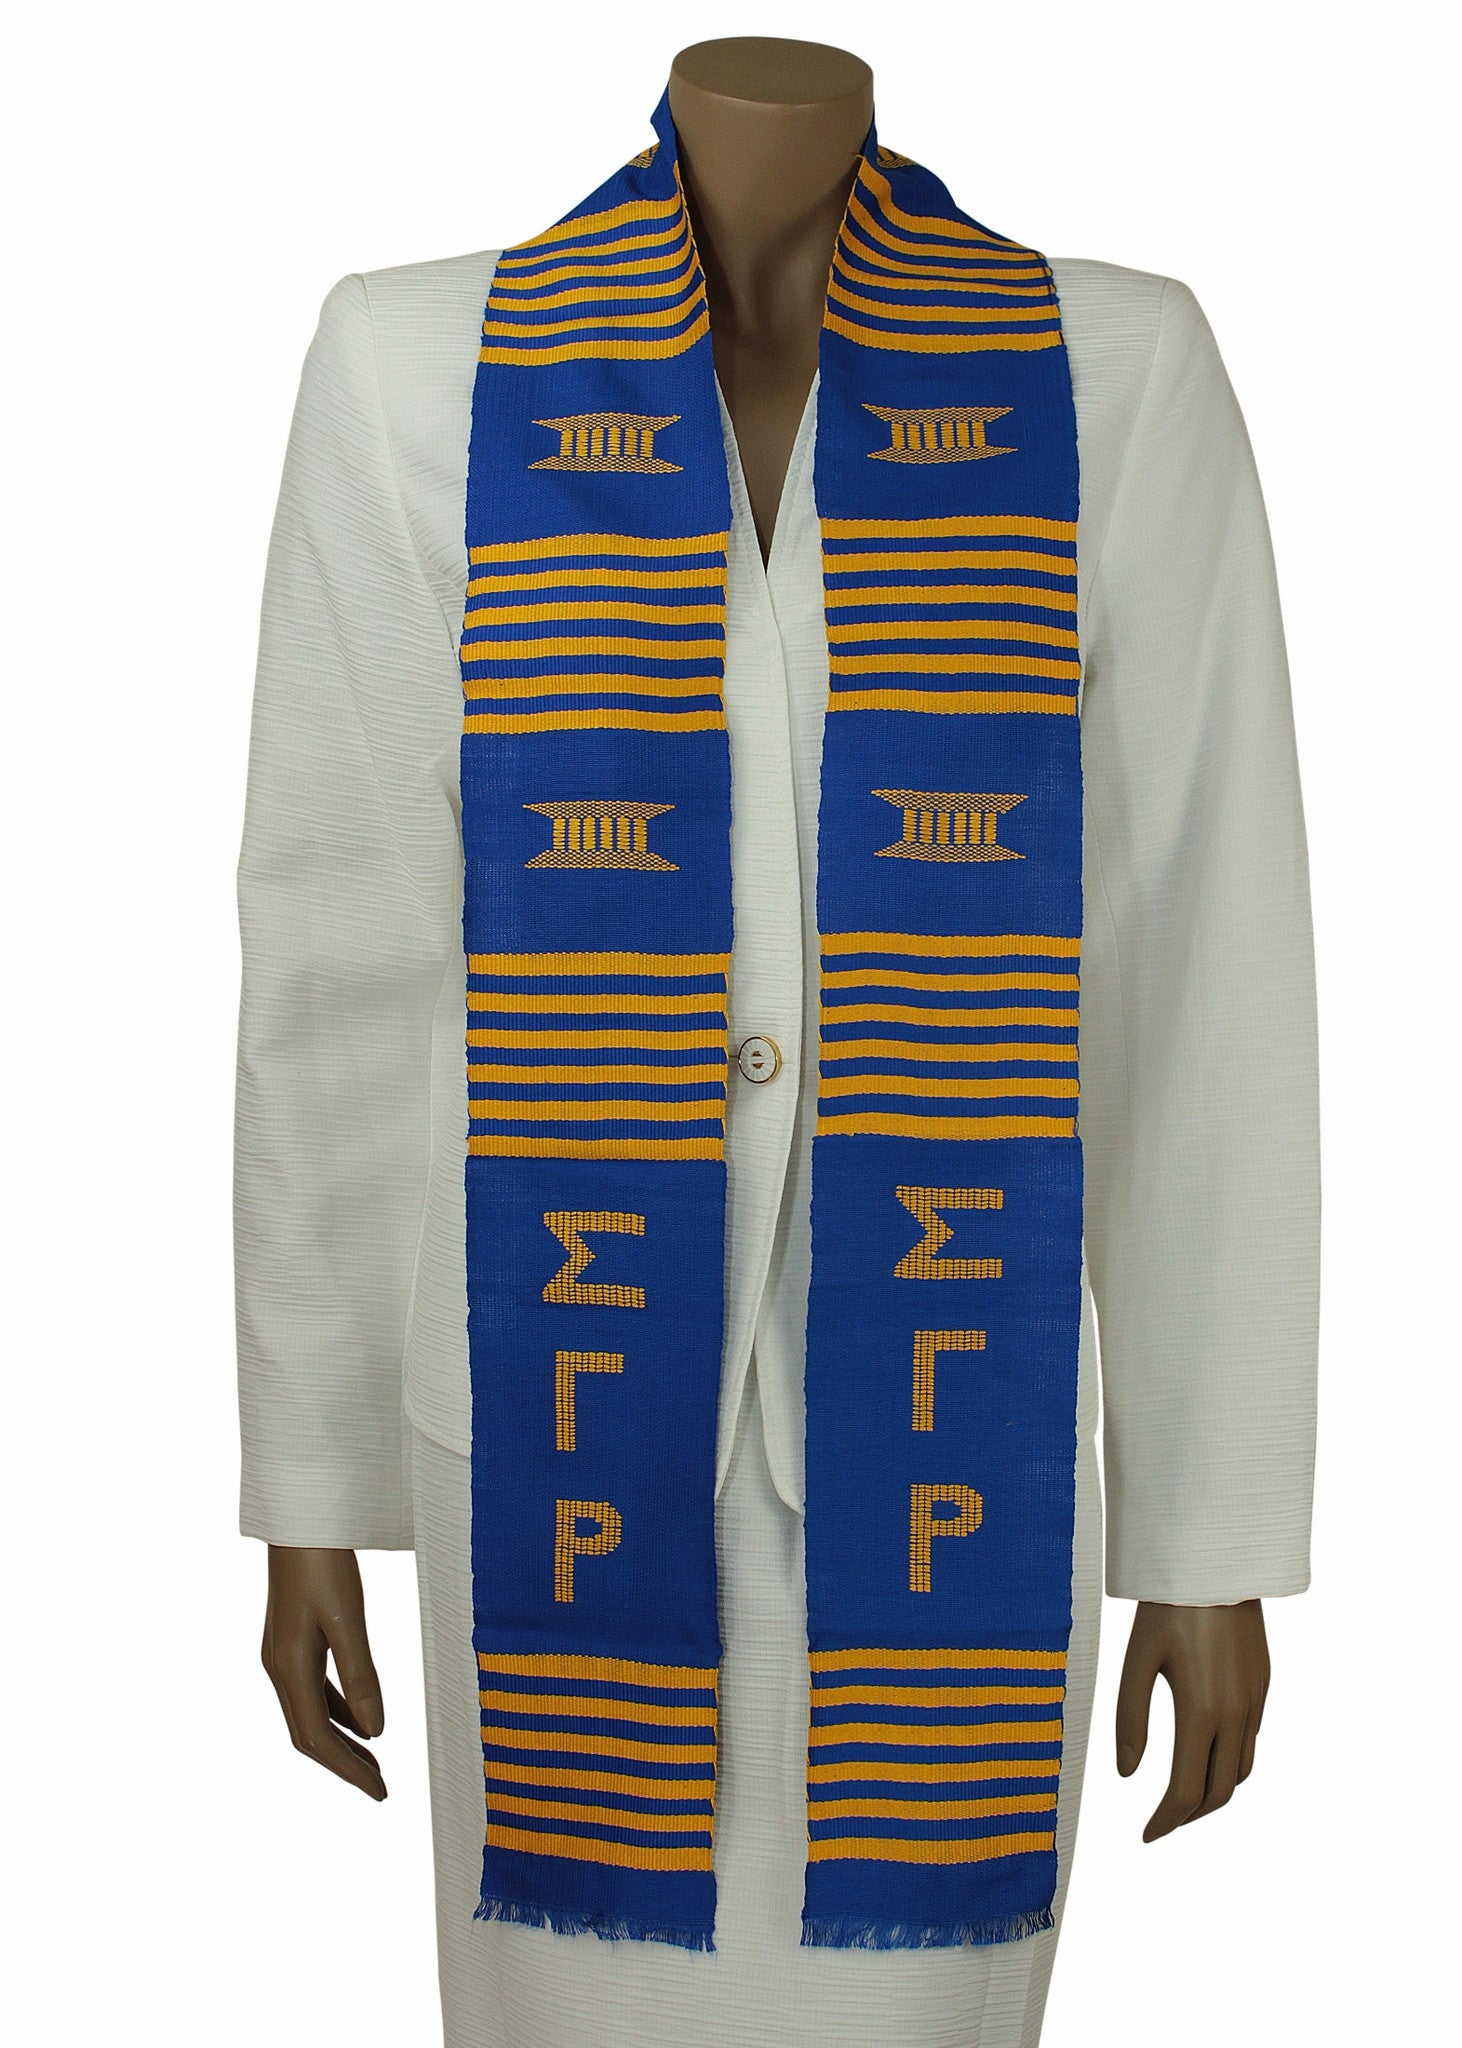 Sigma Gamma Rho Blue Kente Stole by Gold Coast Africa